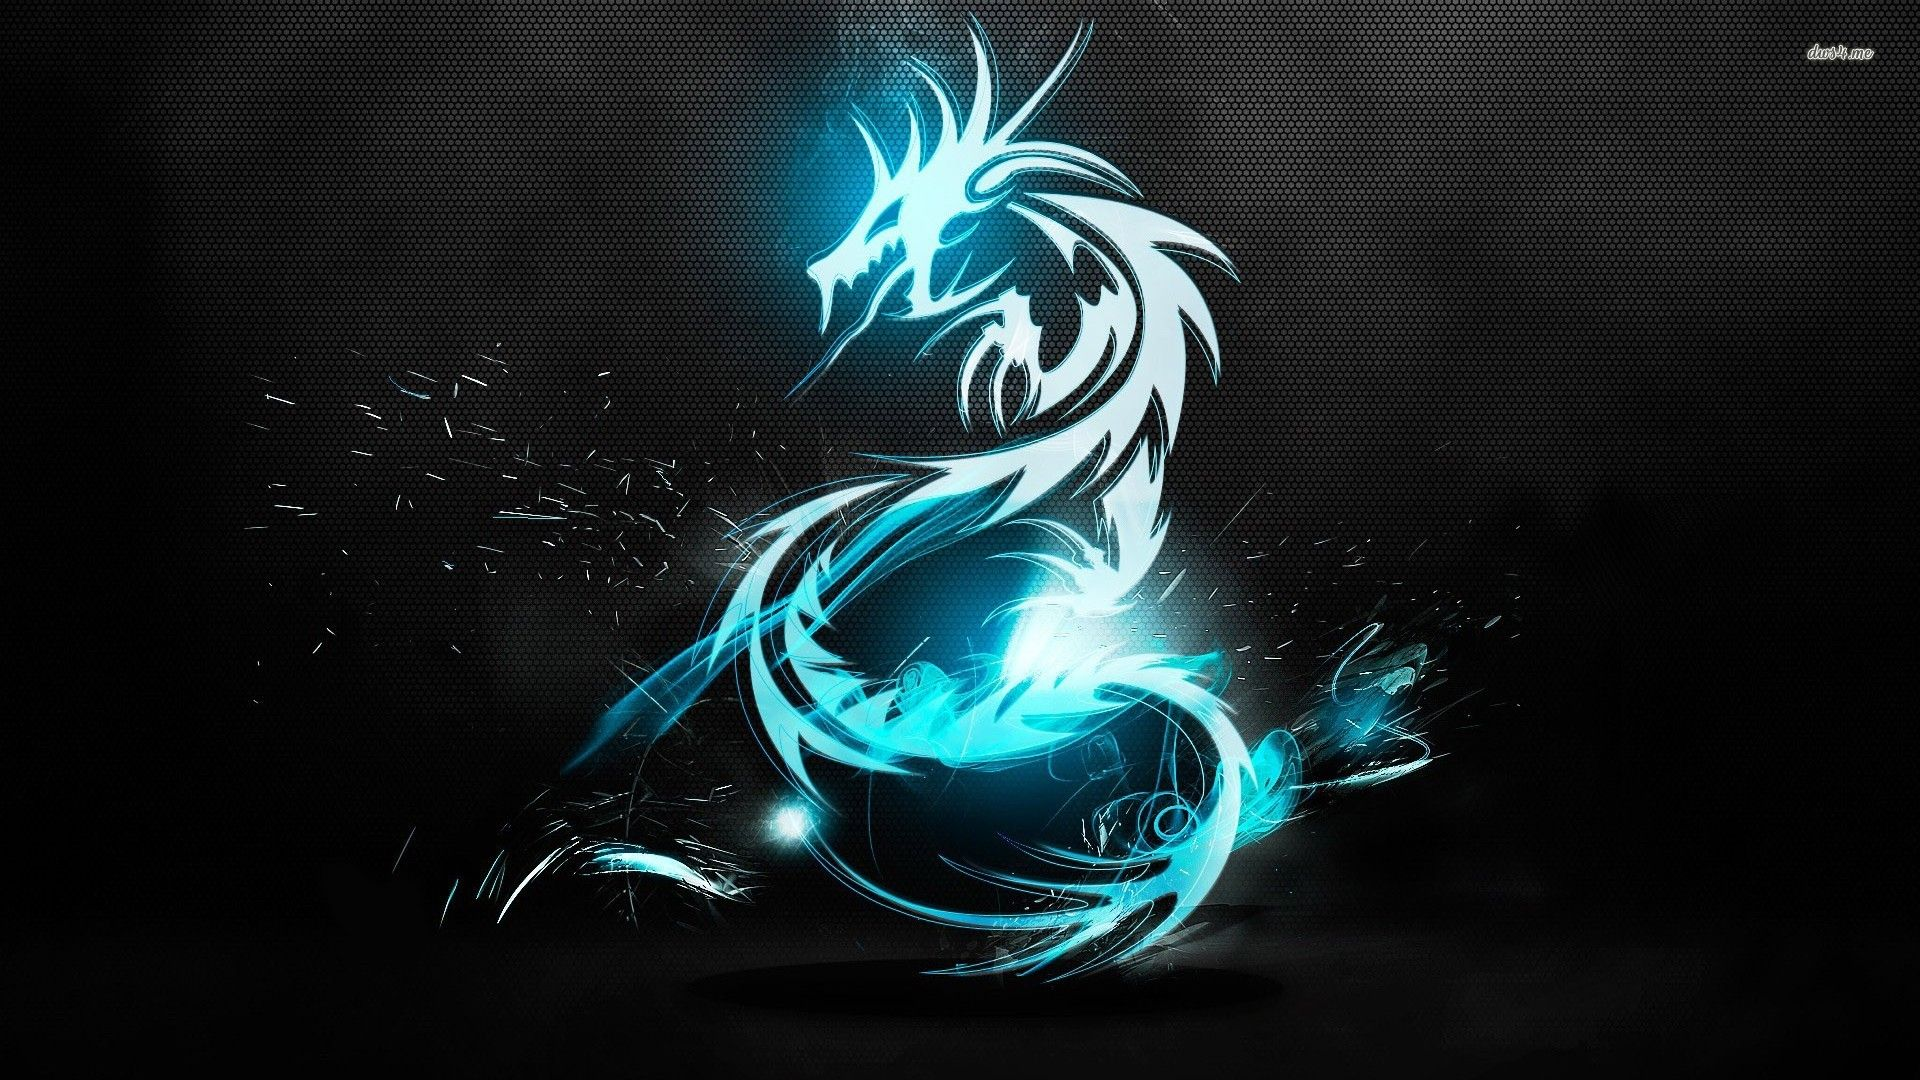 Blue Dragon Wallpapers 1920x1080